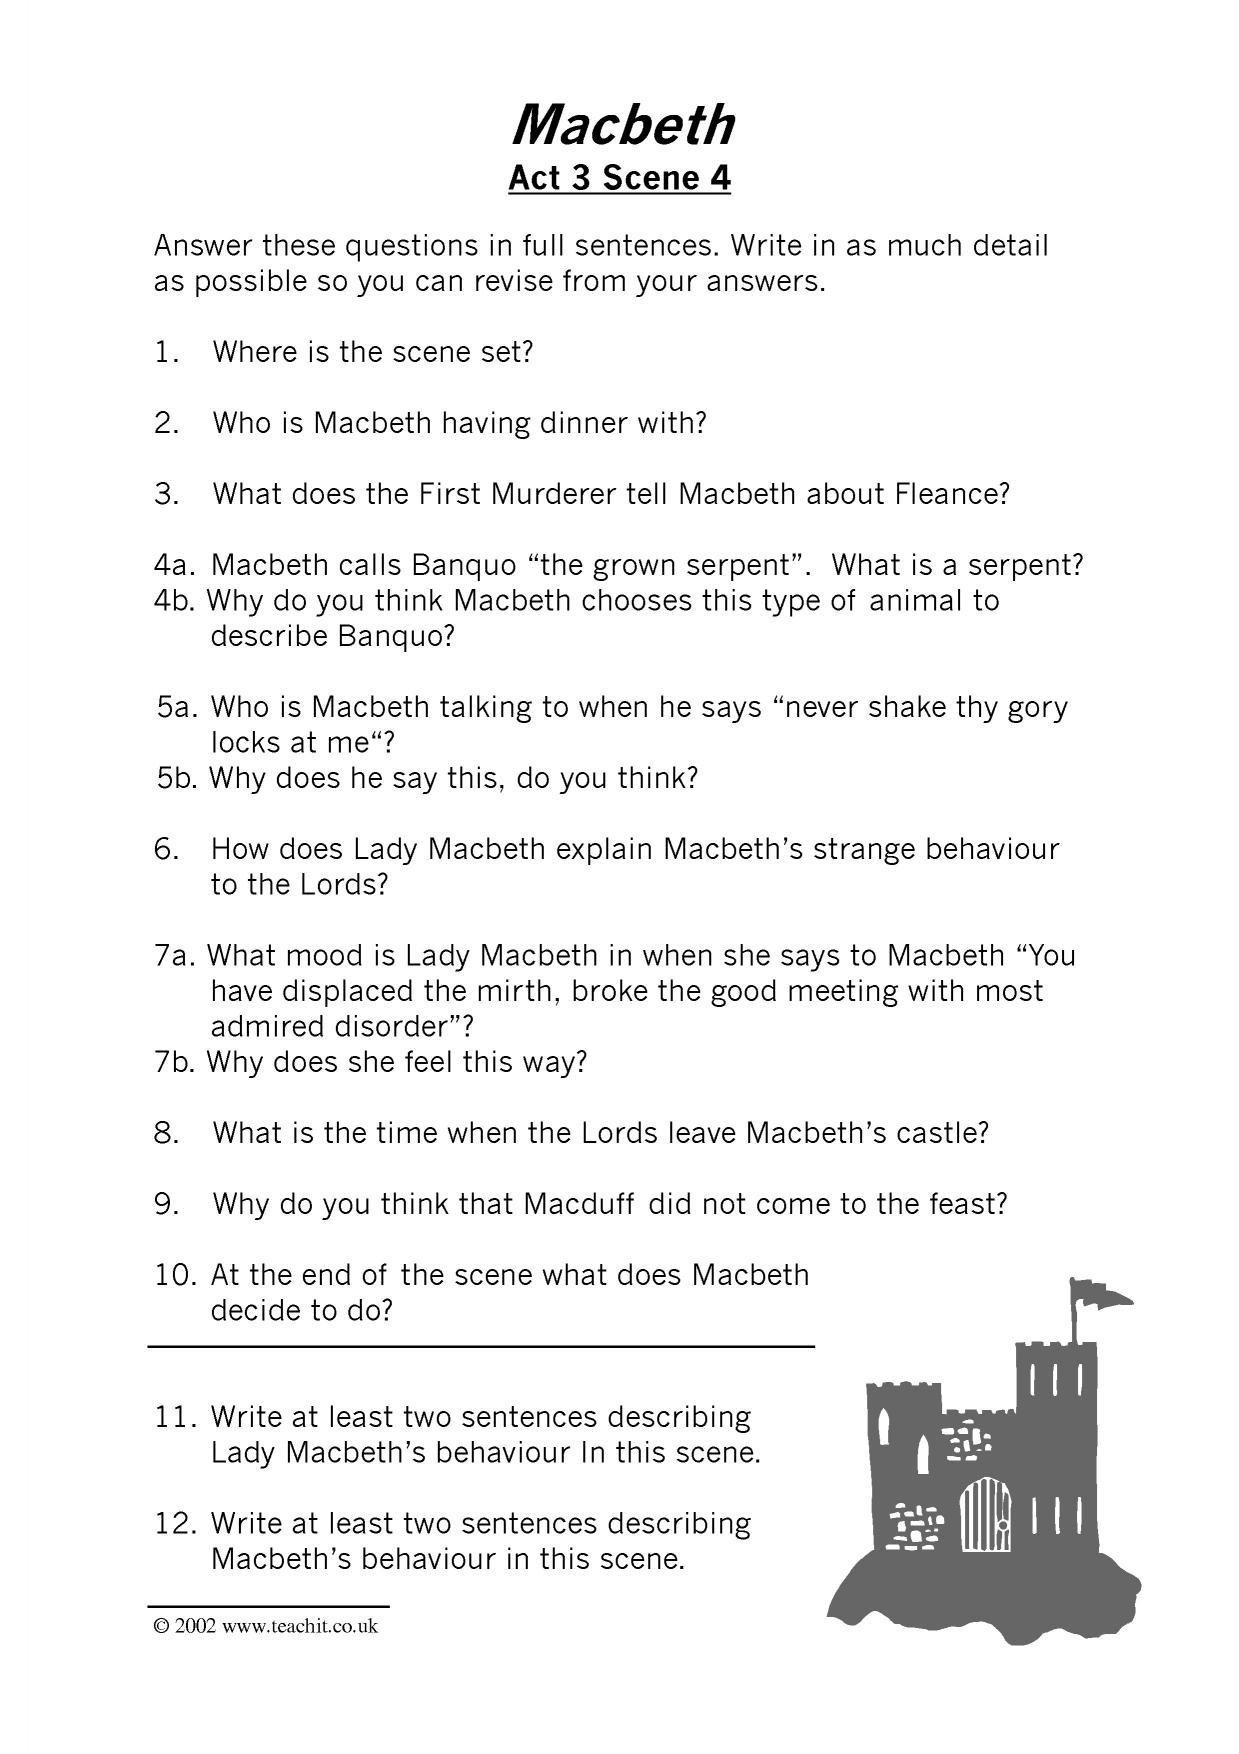 macbeth act 4 study guide questions and answers